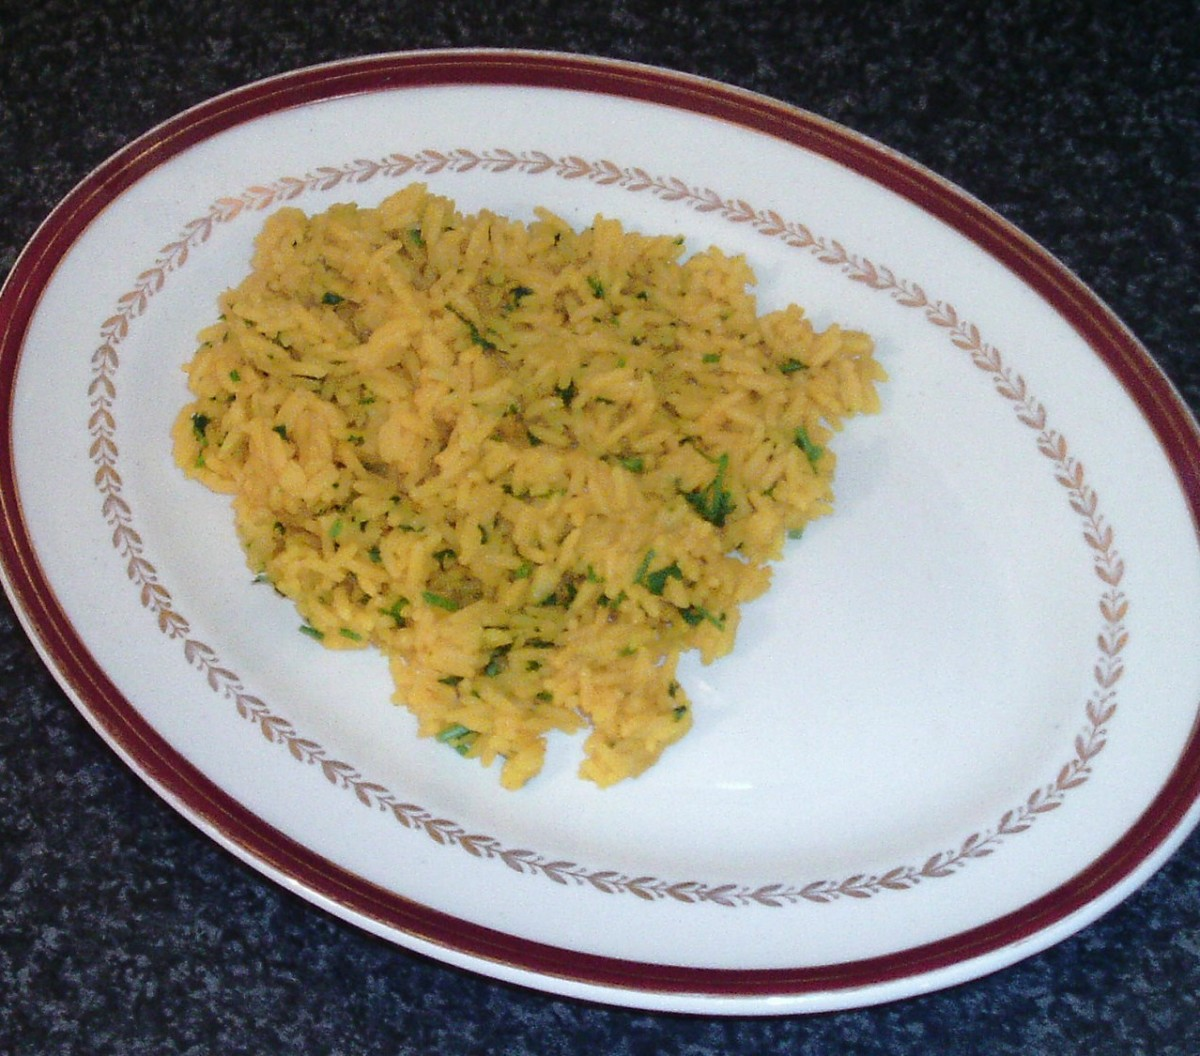 Turmeric rice bed is arranged on serving plate